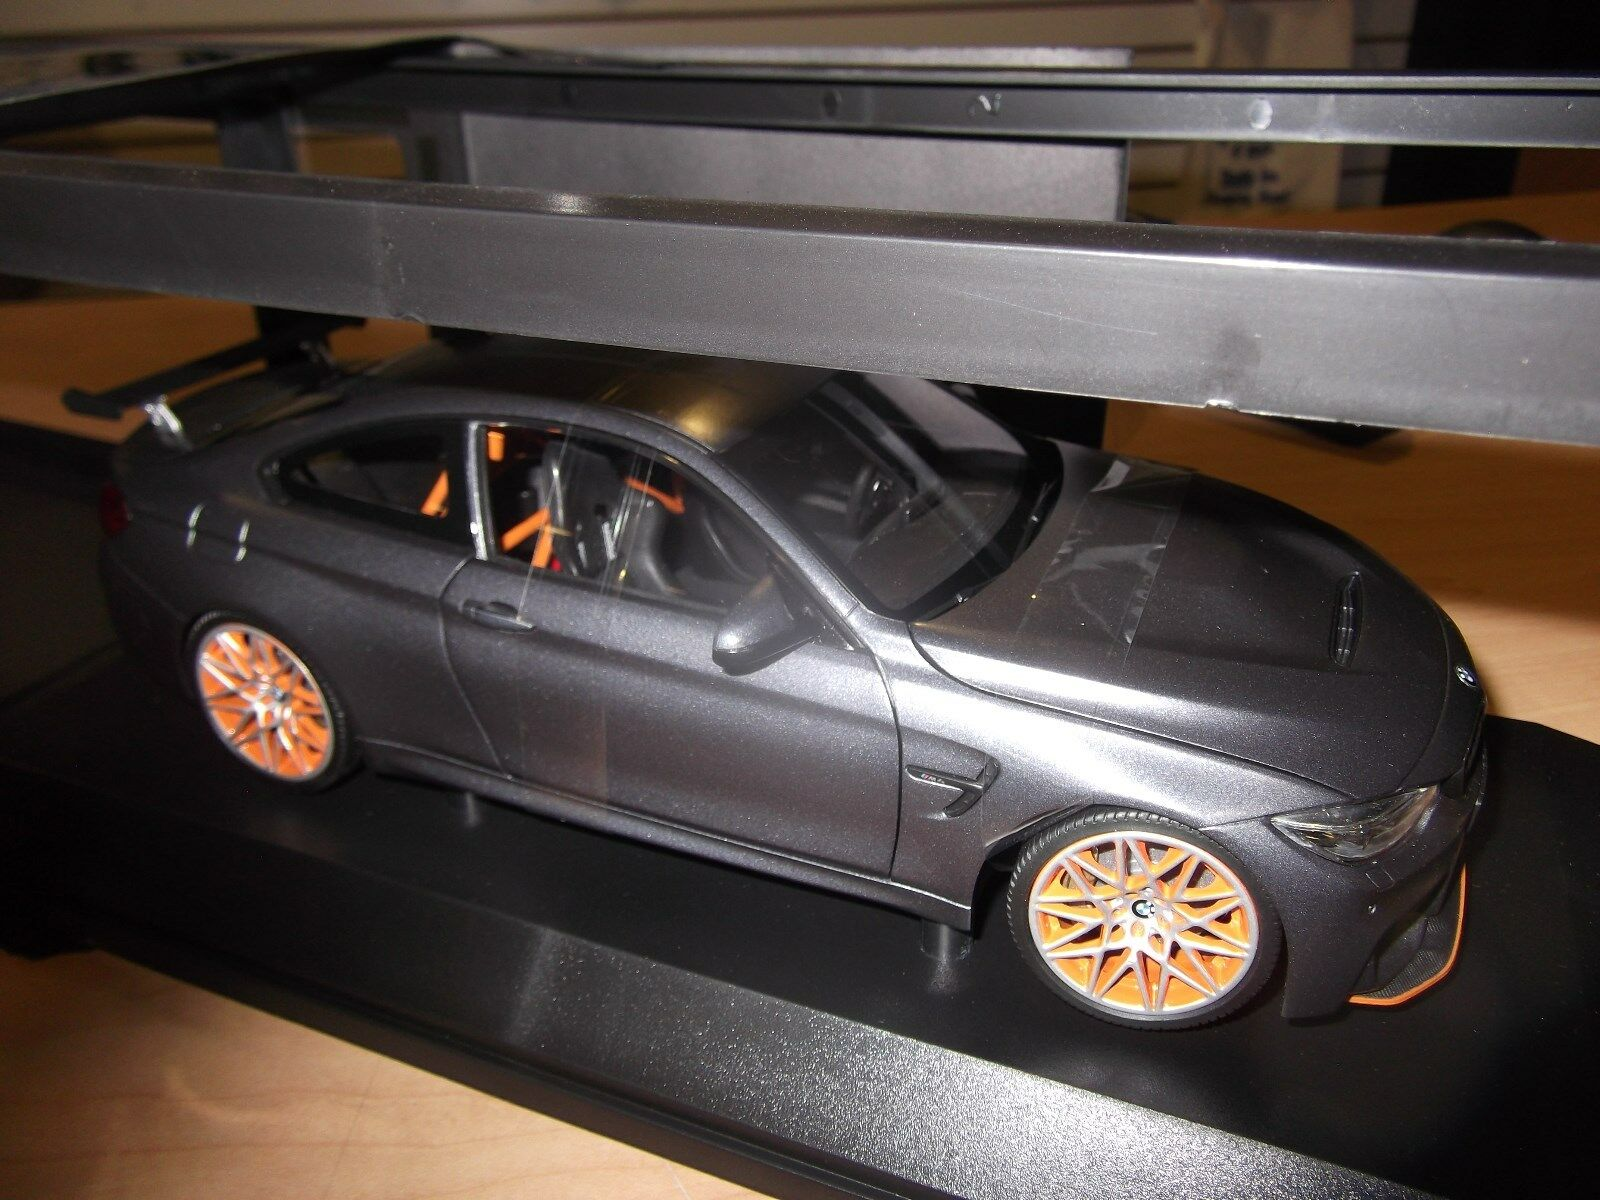 BMW M4 GTS F82 1 18 scale model miniature voiture de collection 80432411555 OEM